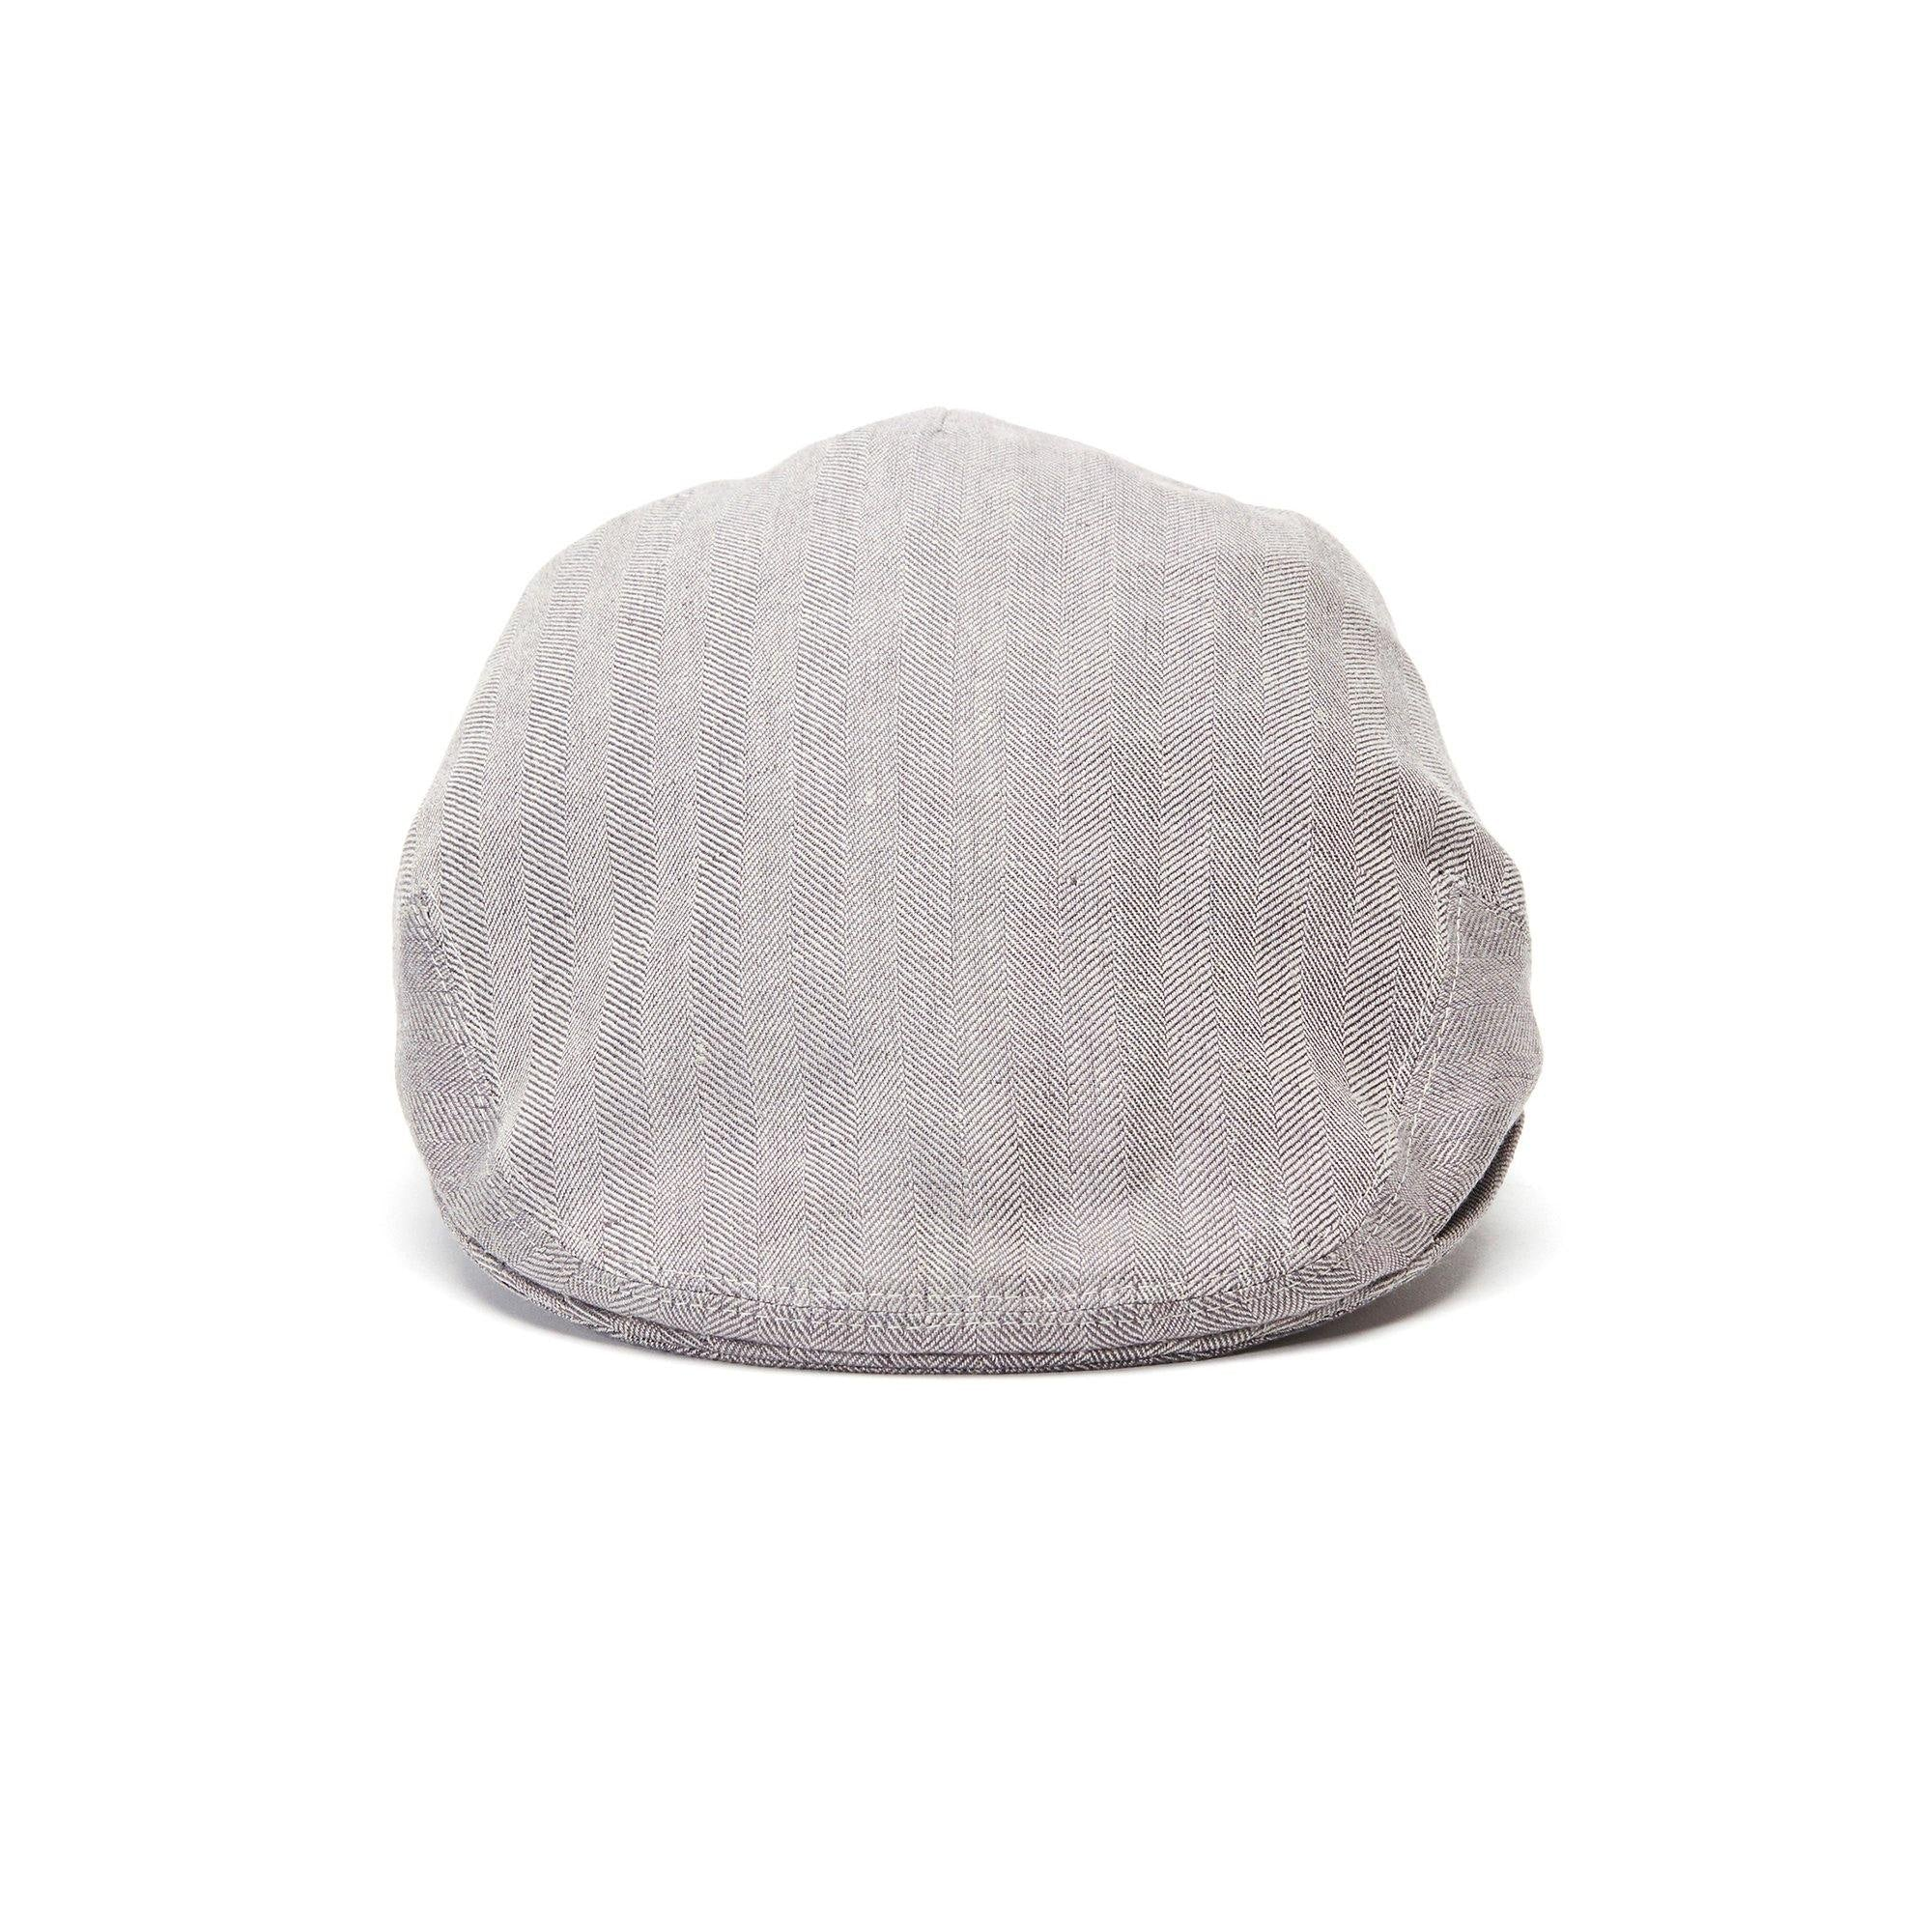 Goorin Bros. alfred linen low profile ivy flatcap Grey front view